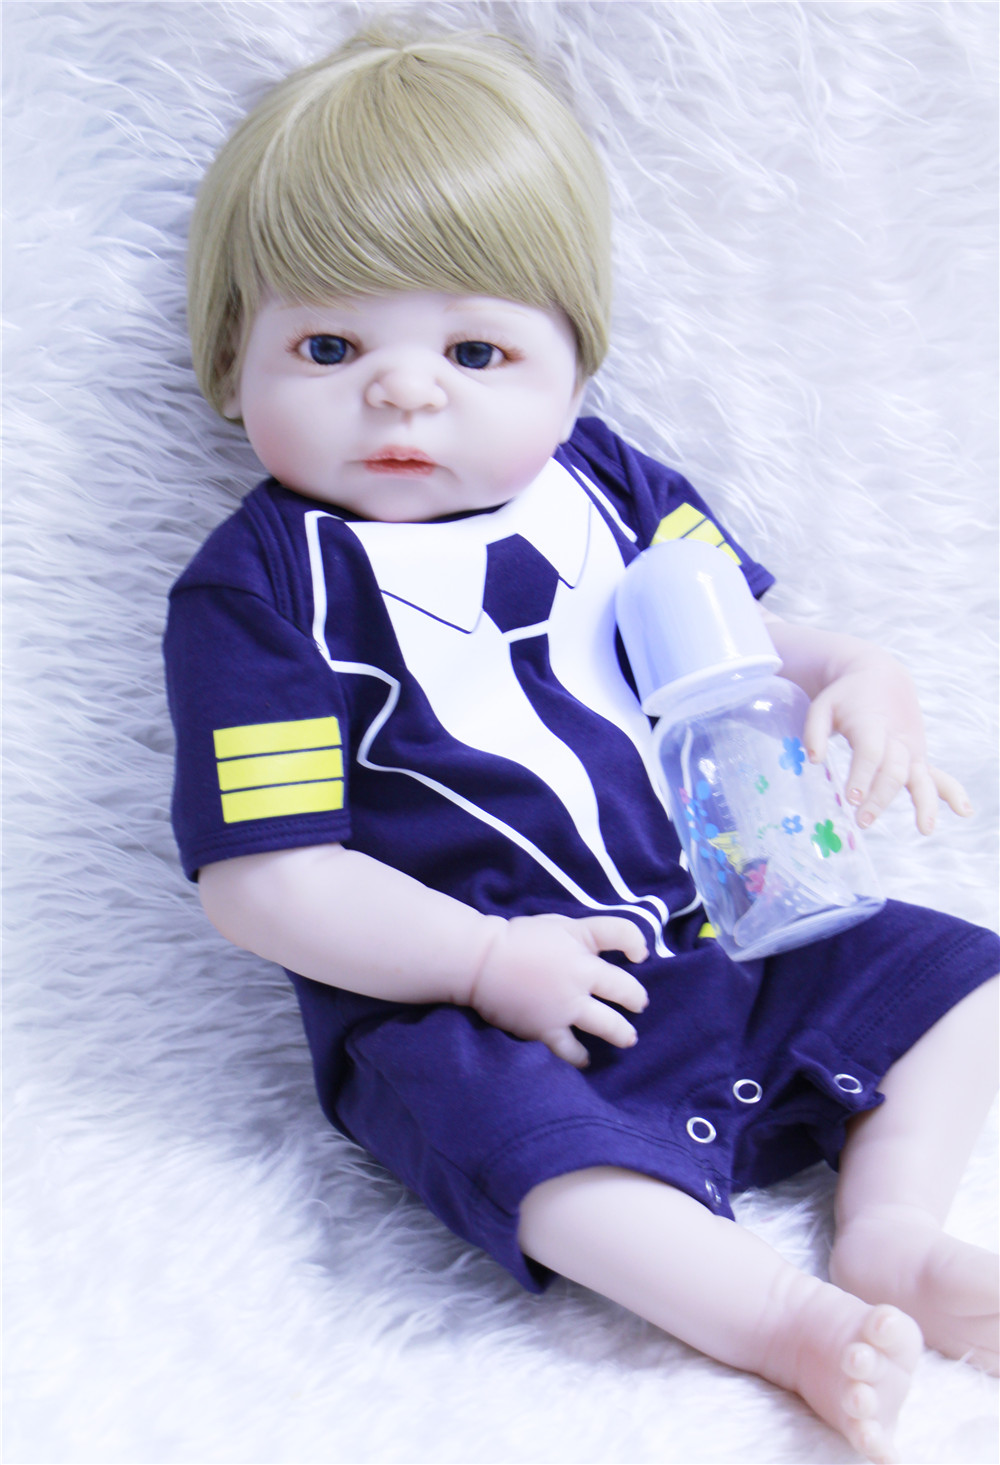 Full silicone reborn baby boy dolls 57cm realistic newborn babies alive doll for child gift bebes reborn menino bonecasFull silicone reborn baby boy dolls 57cm realistic newborn babies alive doll for child gift bebes reborn menino bonecas